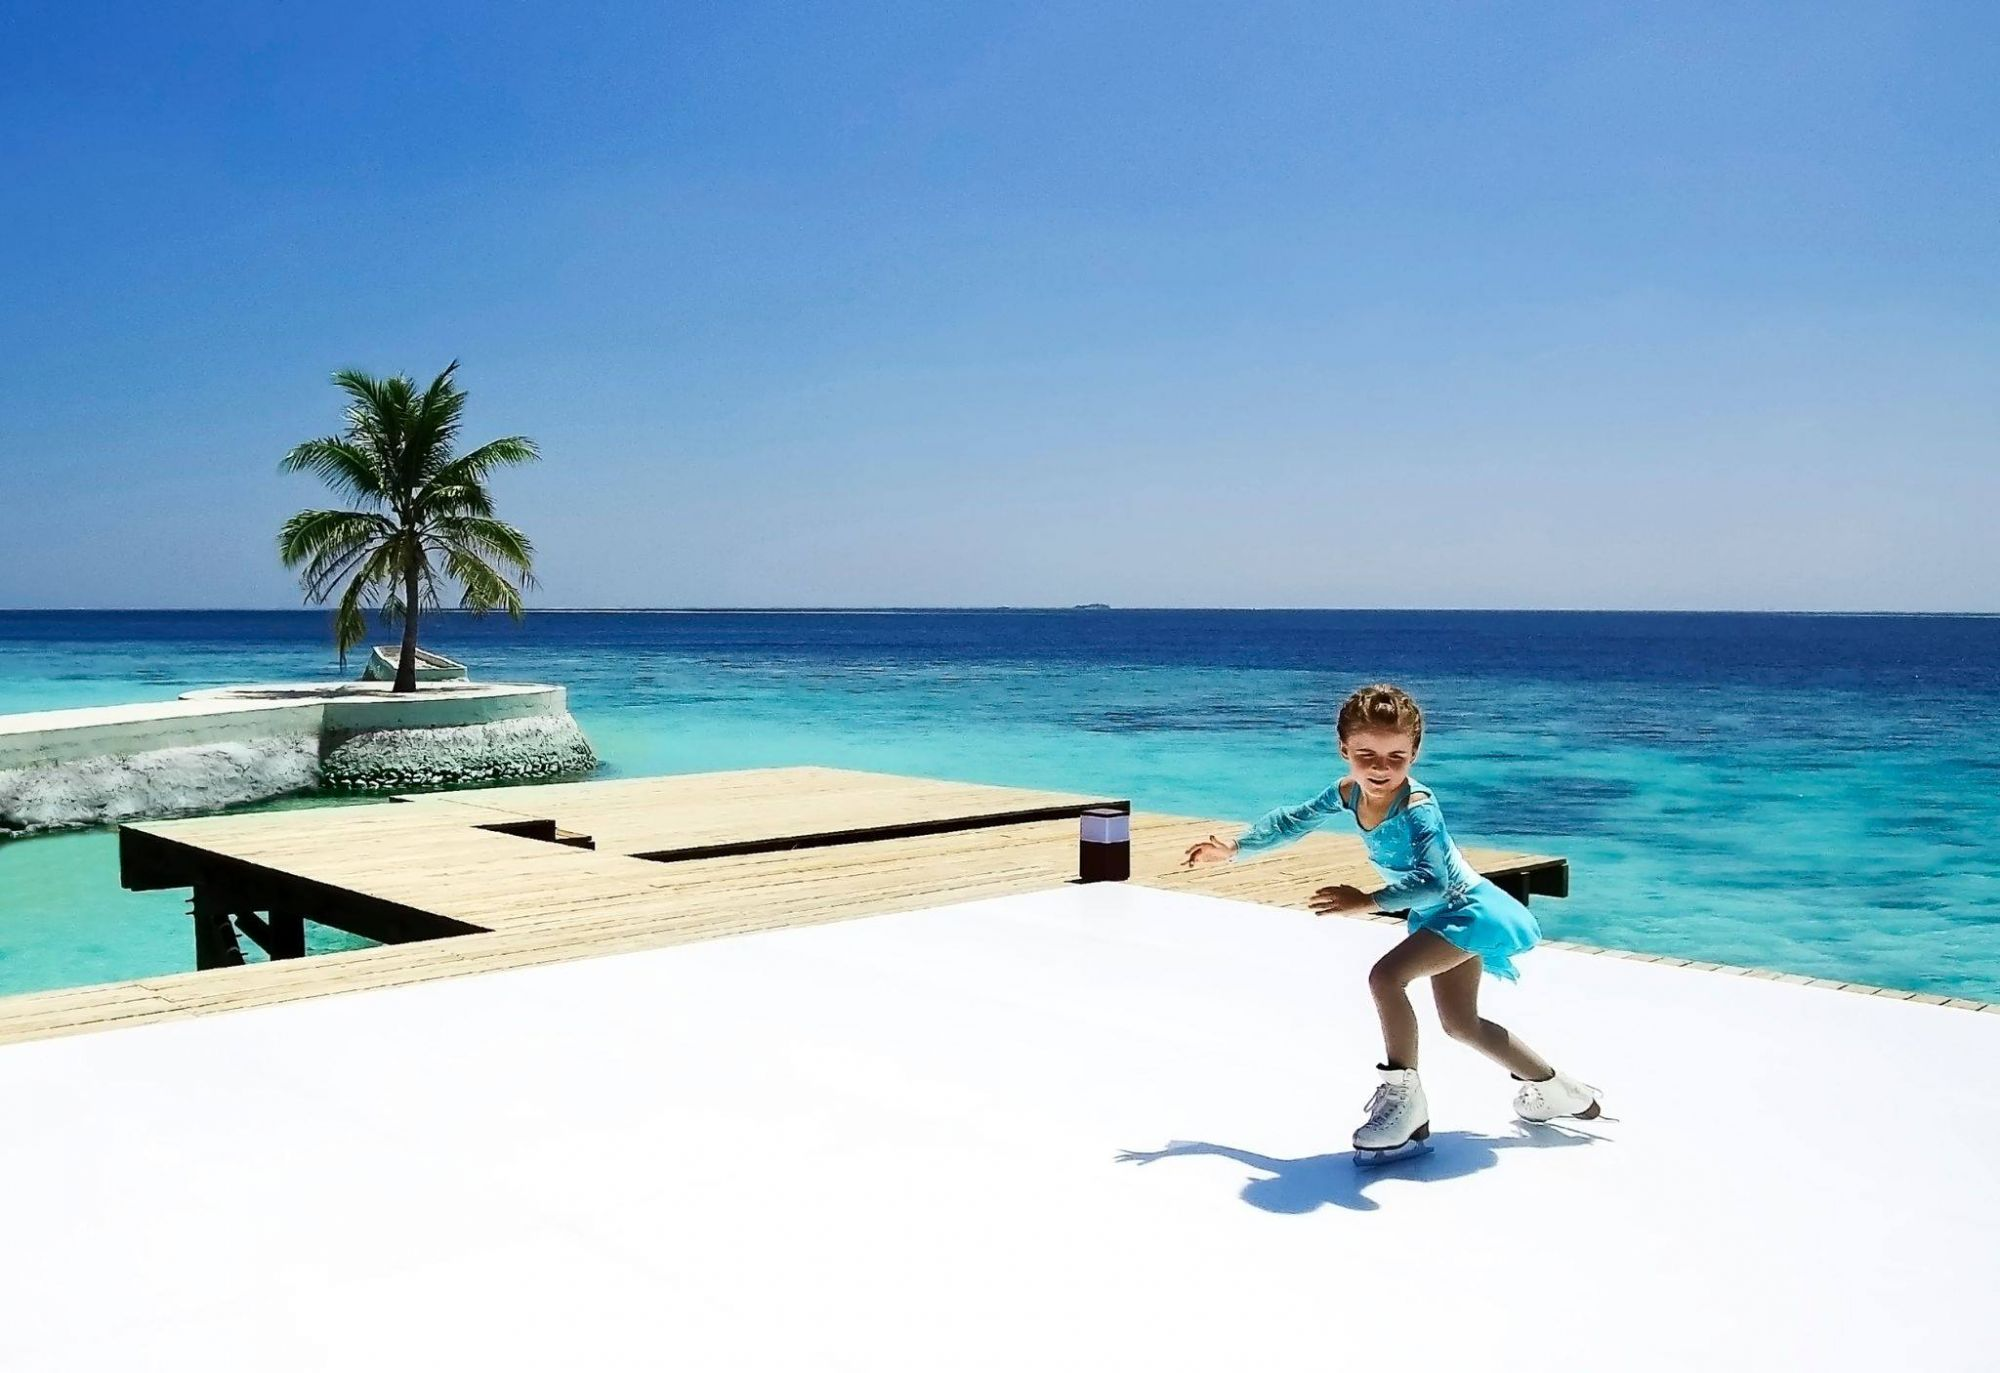 Jumeirah Vitavelli Will Introduce The First Ice Skating Rink In Maldives Photo Courtesy